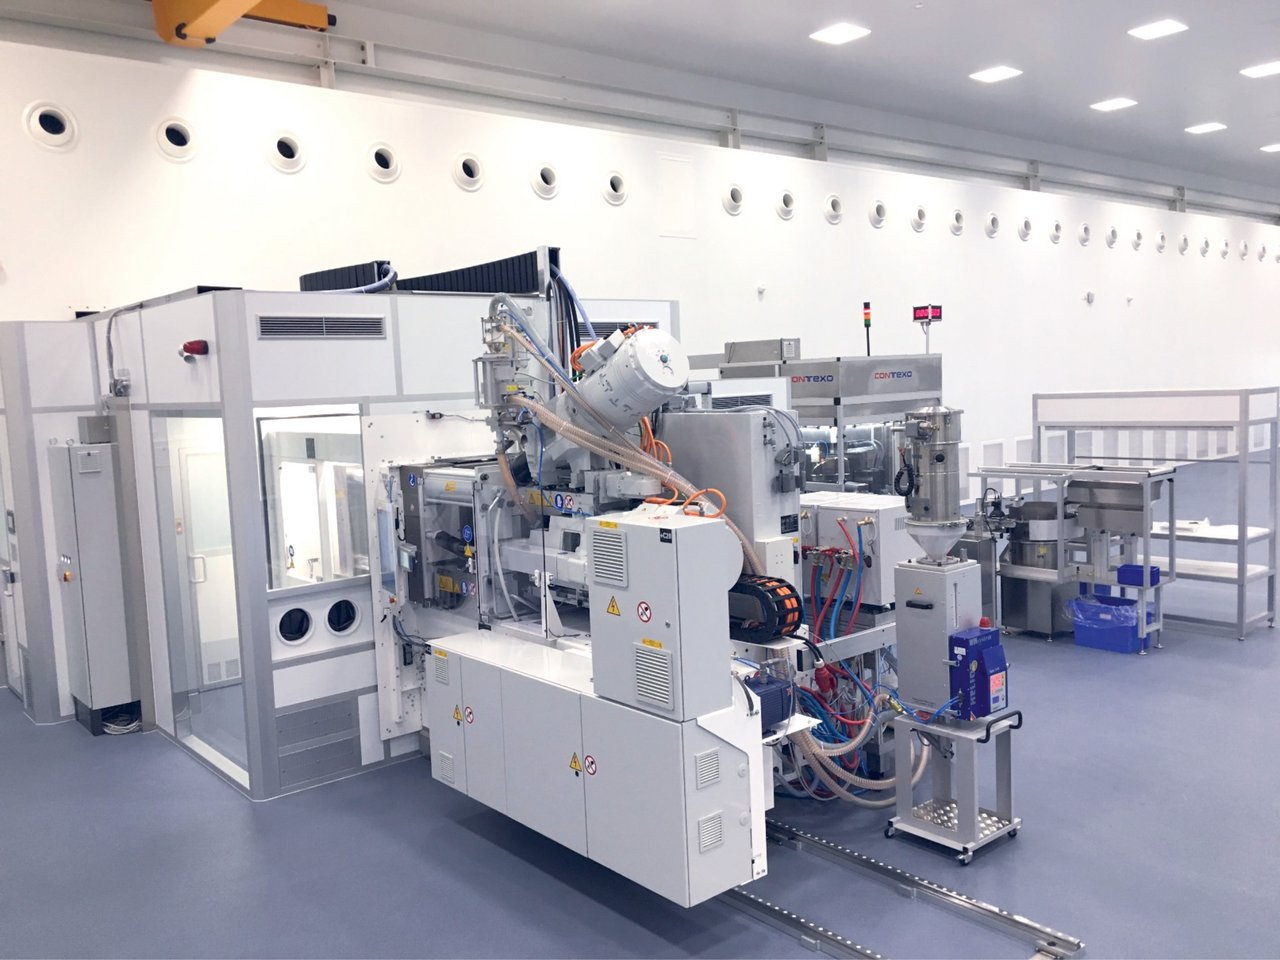 Cleanroom housing for injection moulding machines for the aseptic production of drug packaging, cleanroom class GMP C